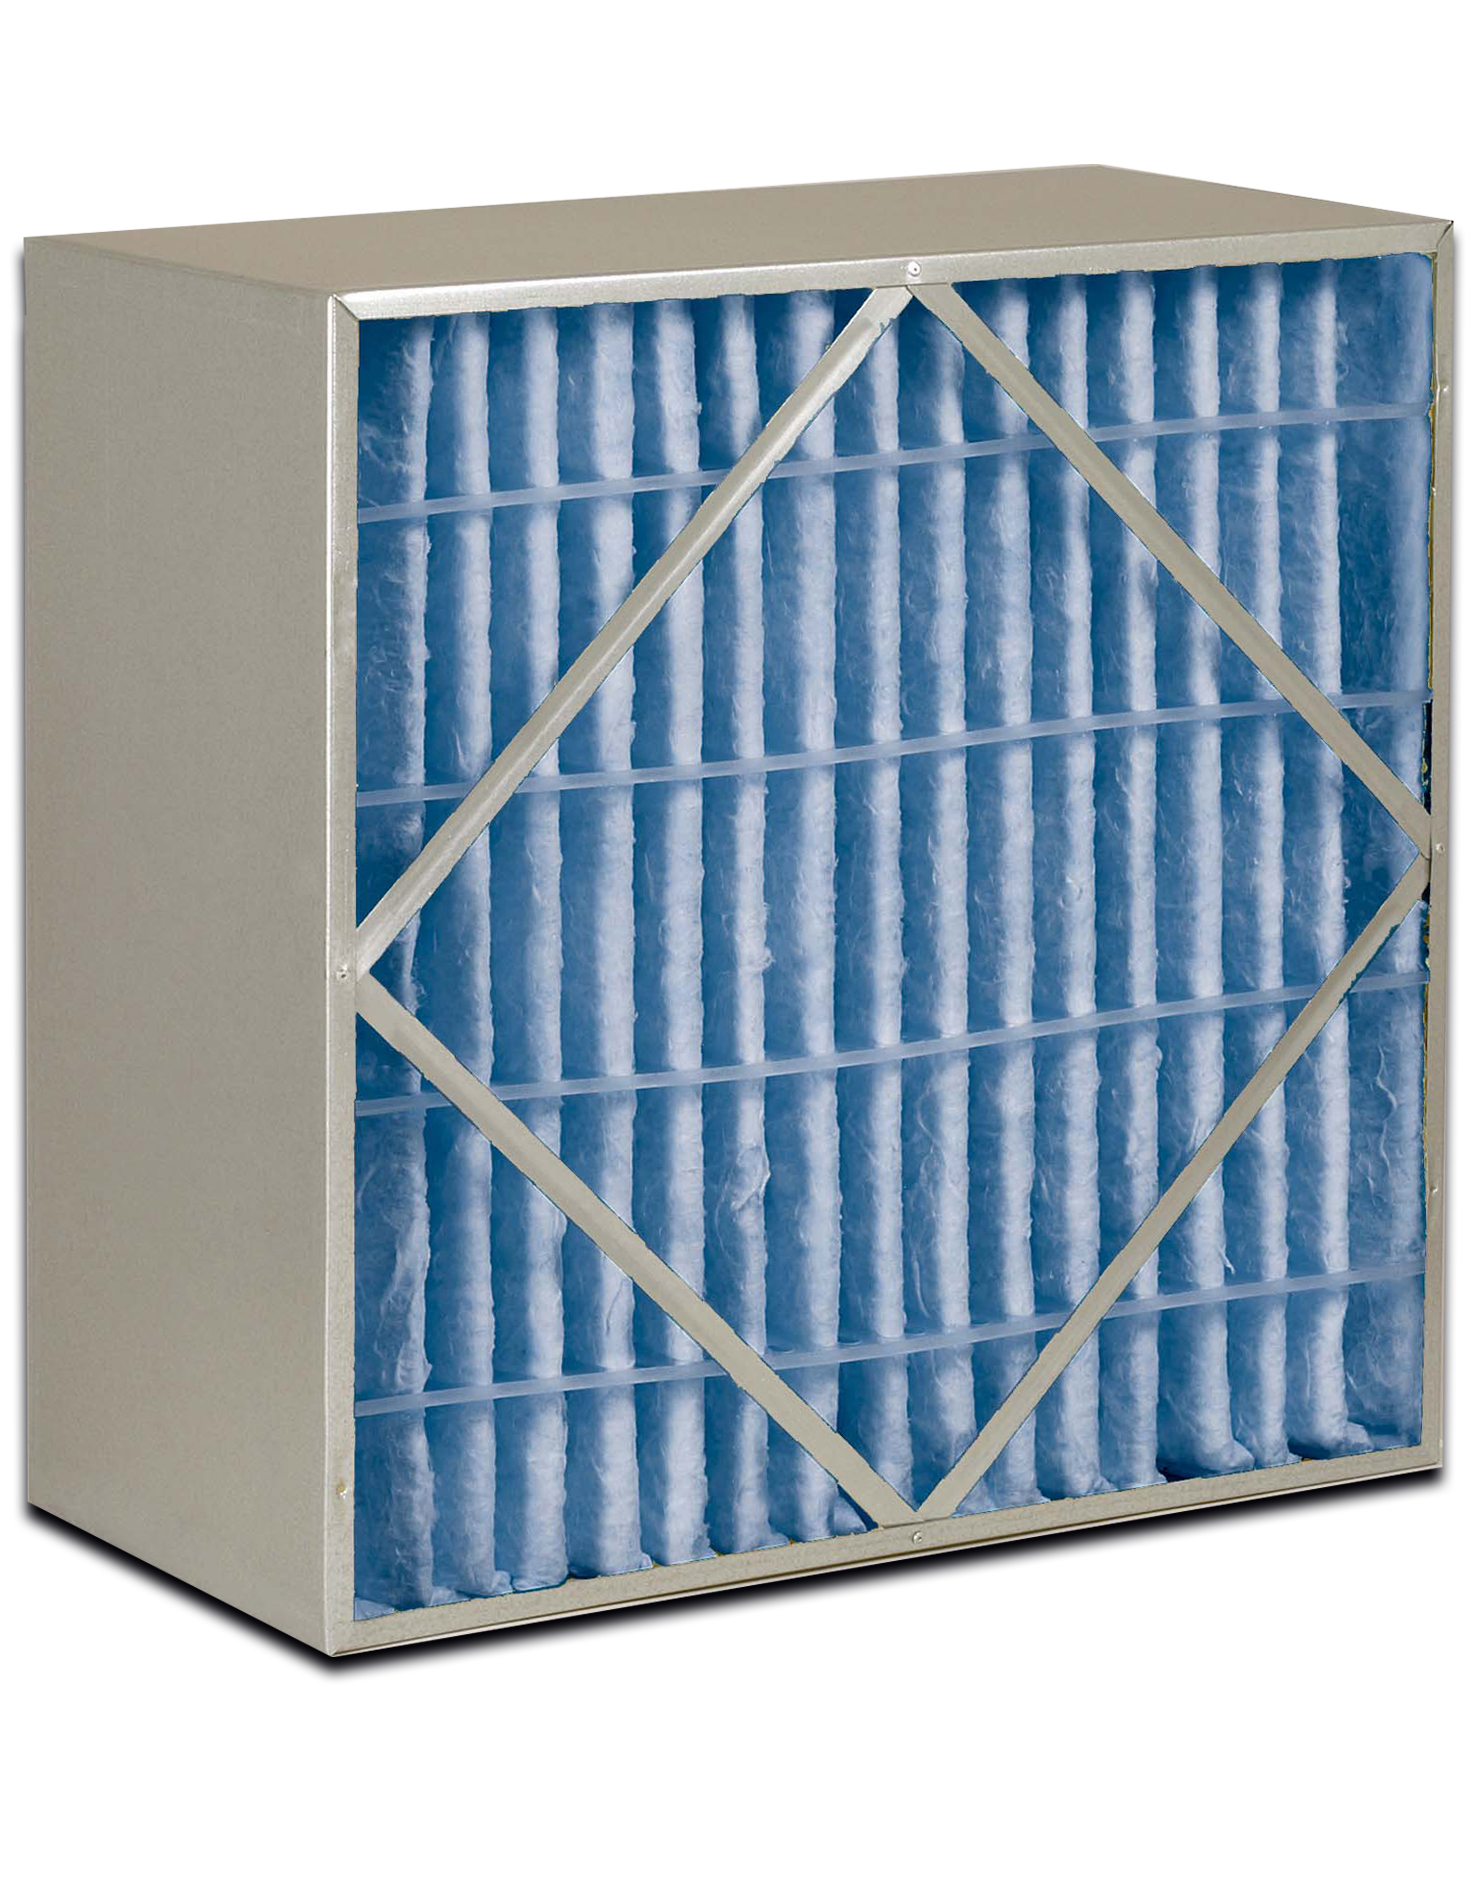 Purolator DefiantCell Box Filter